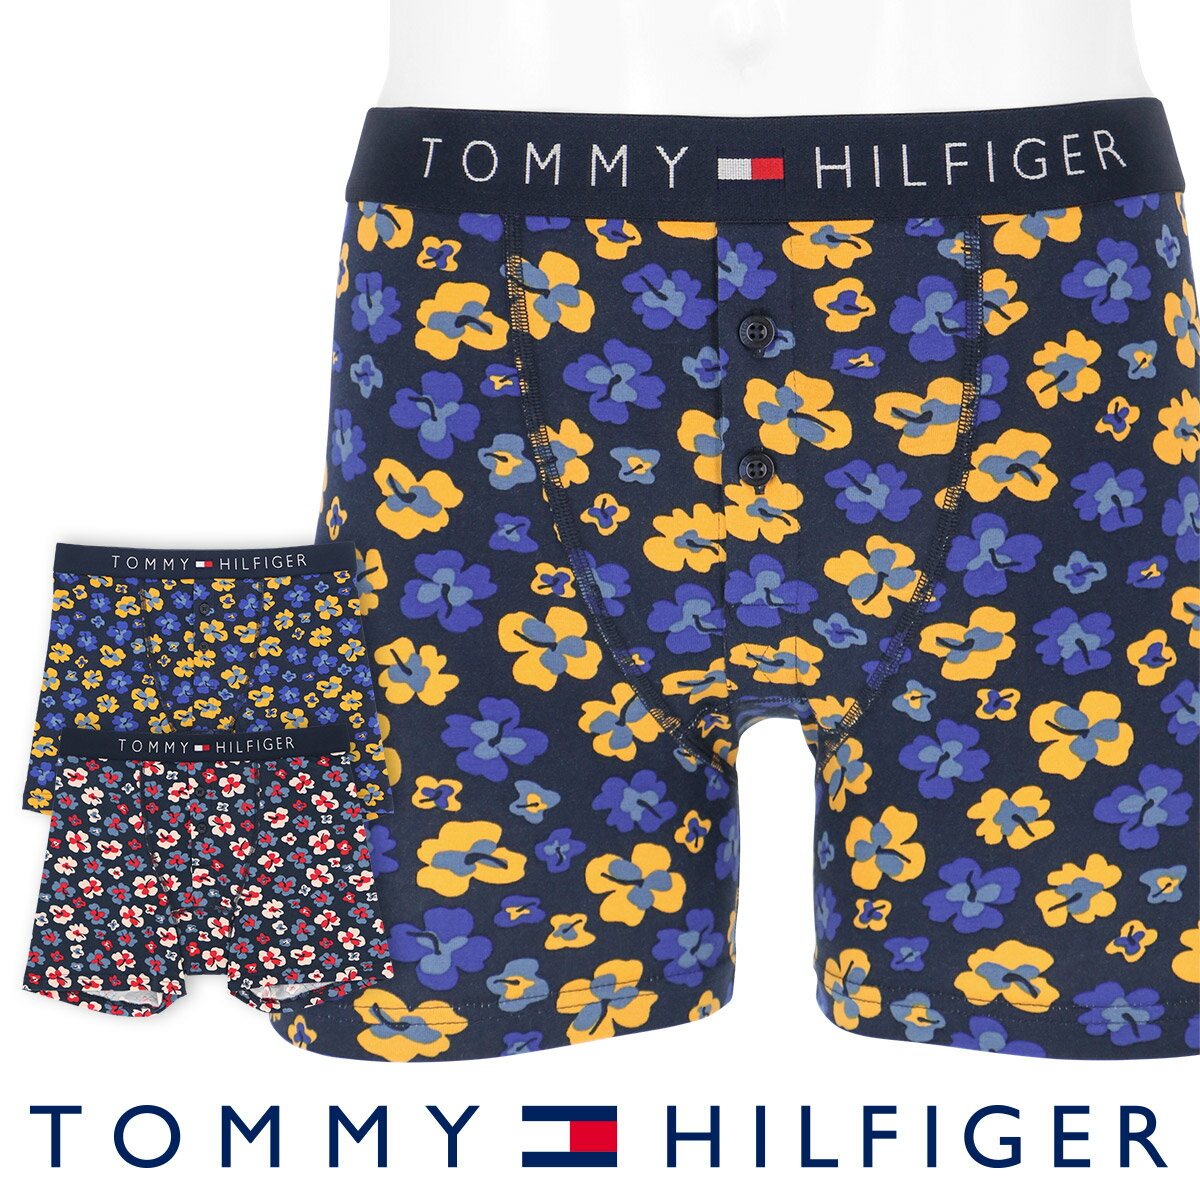 TOMMY HILFIGER|トミーヒルフィガーJAPAN LIMITED 日本限定COTTON ICON BUTTON FLY BOXER BRIEF FLORAL PRINTコットン アイコン フローラル プリント ボクサーパンツ5338-1048男性 メンズ プレゼント 贈答 ギフトポイント10倍